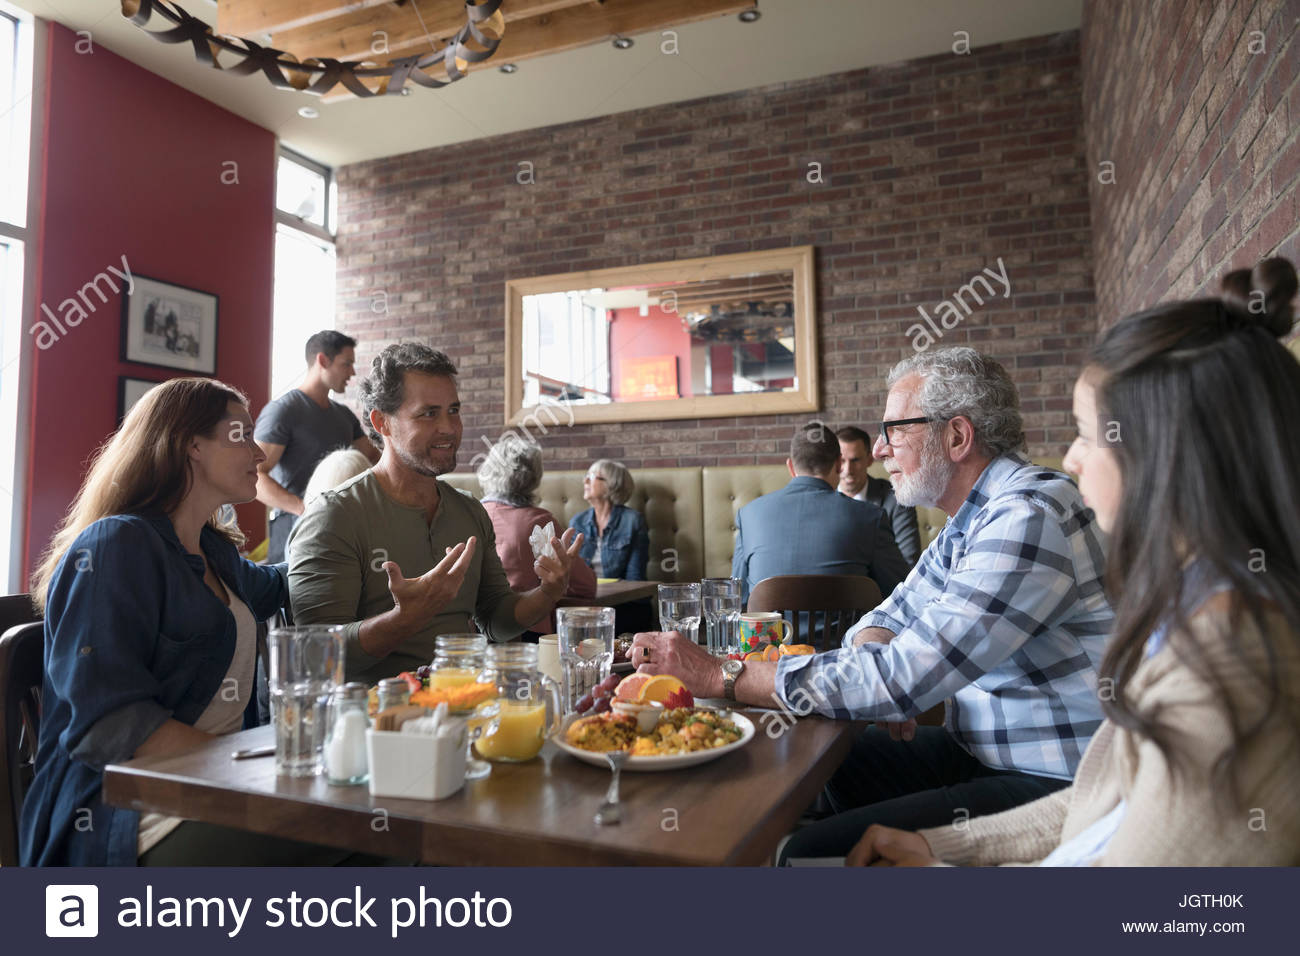 Multi-generation family talking and eating brunch at diner table - Stock Image